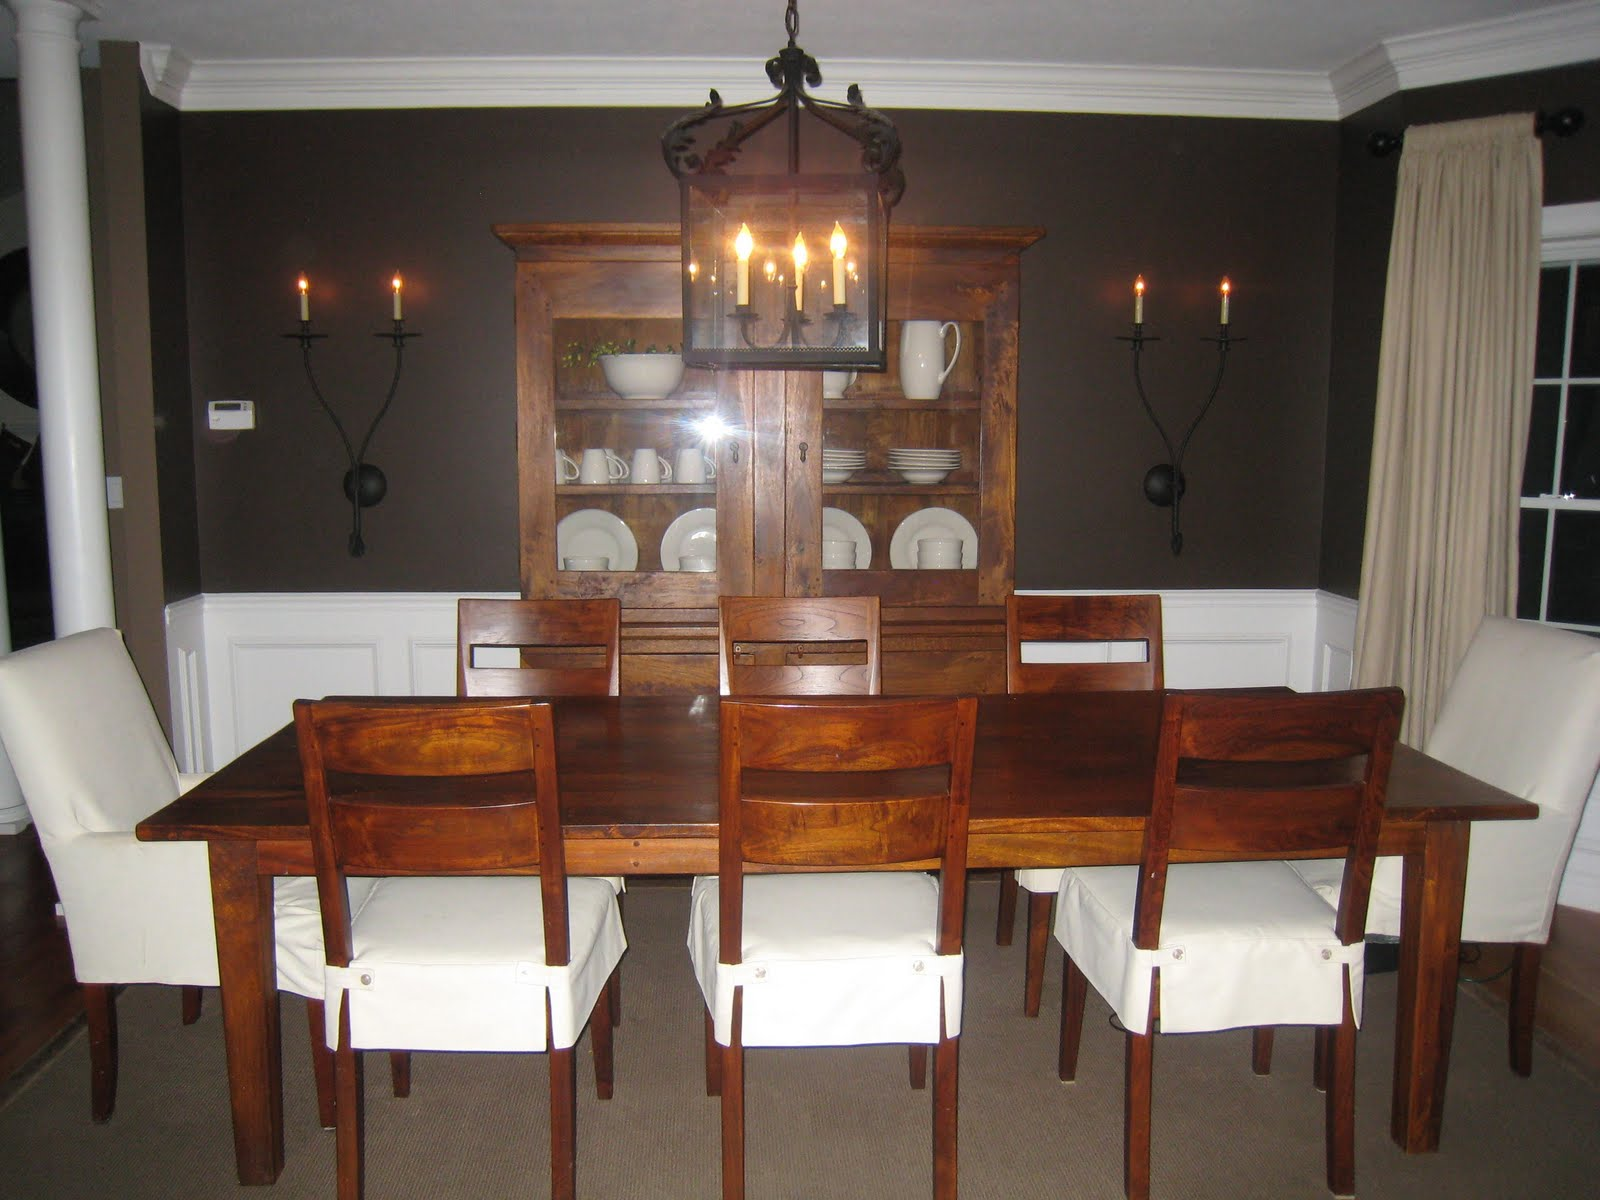 Restoration Hardware Chocolate Paint In A Dining Room We Designed